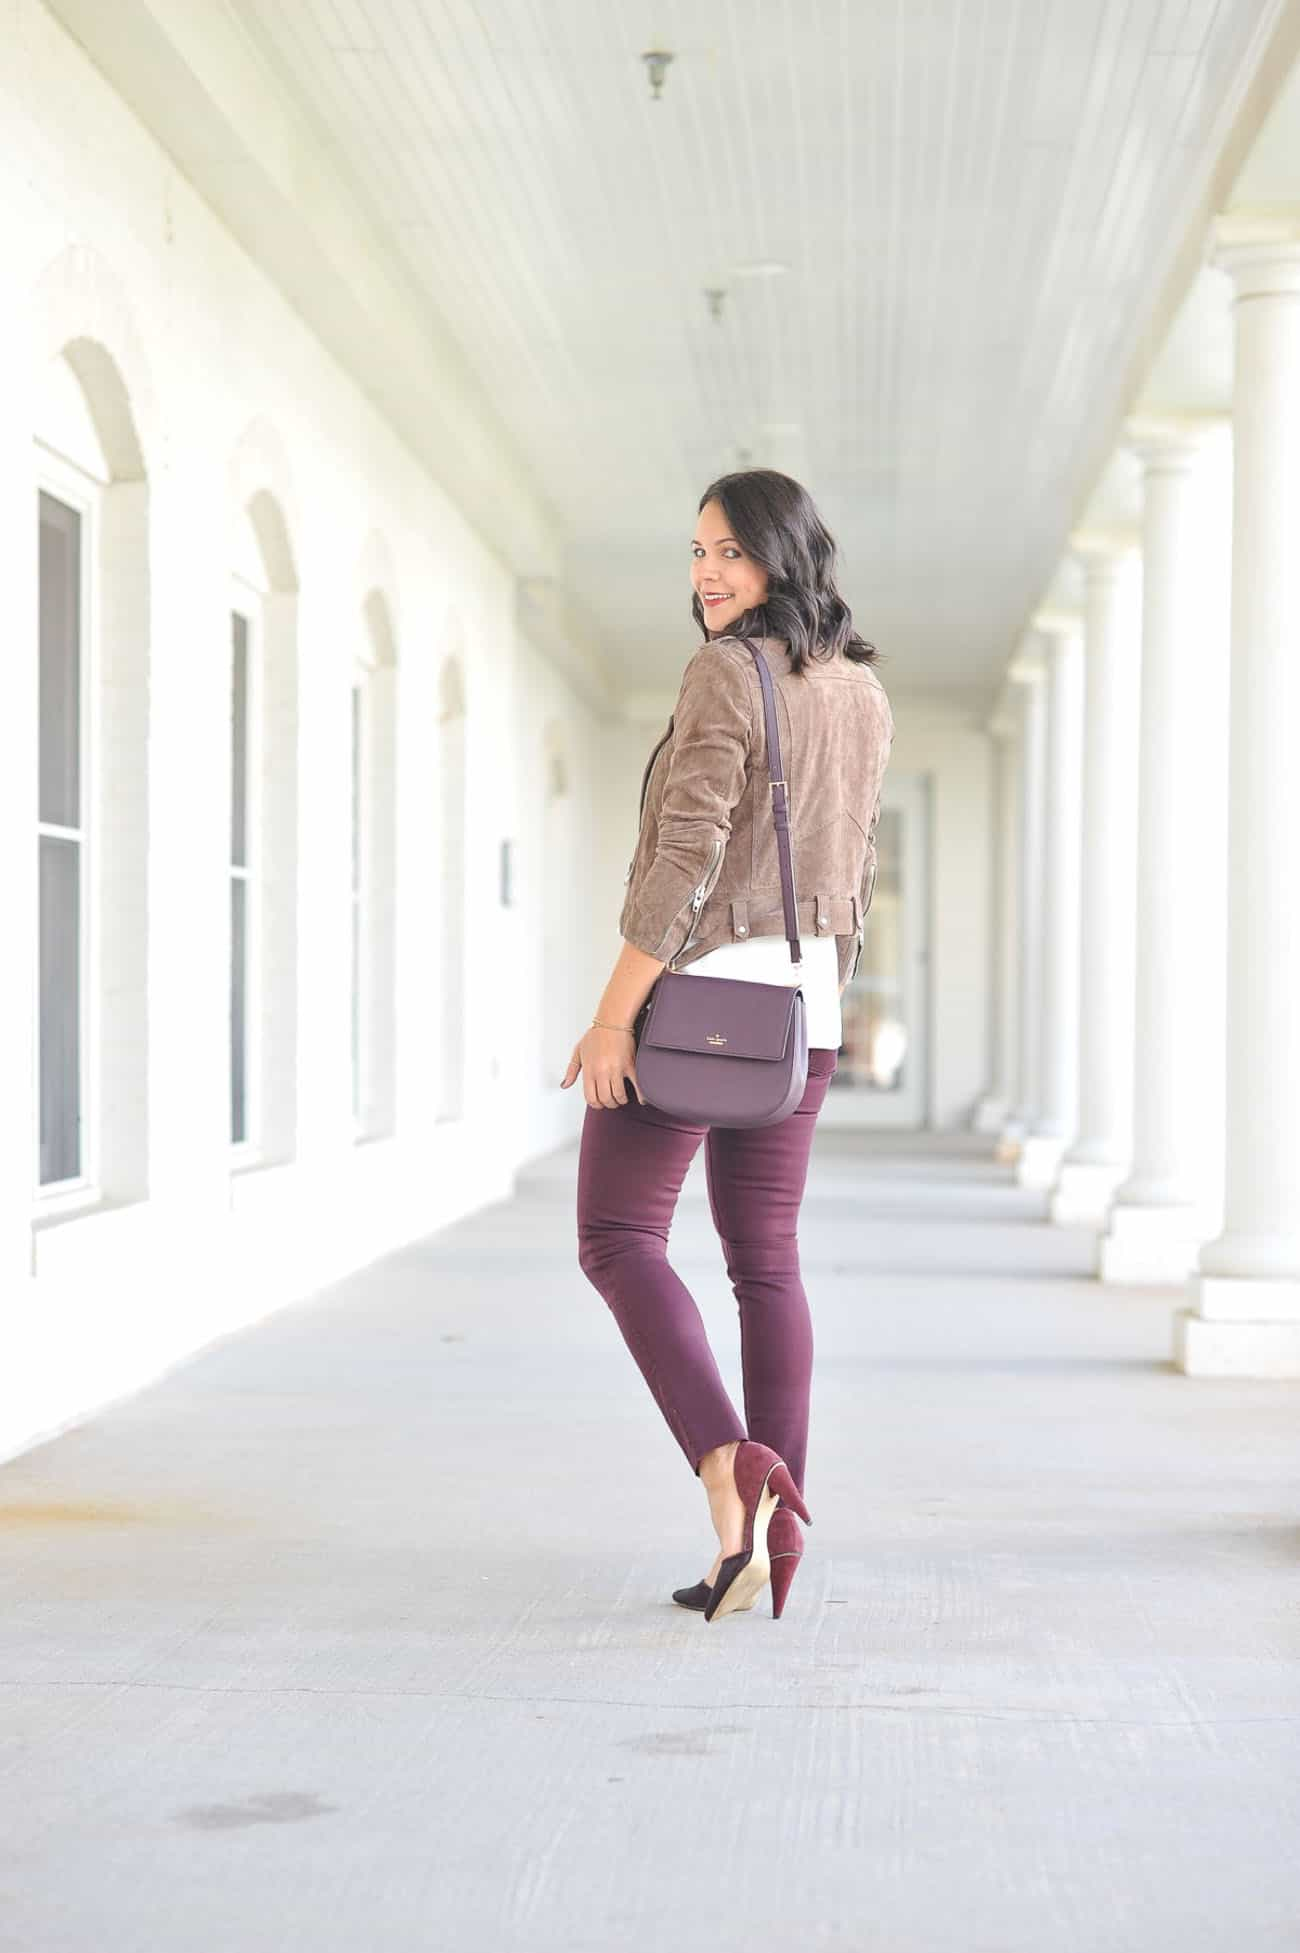 styling a moto jacket, colored jeans for fall, fall outfit ideas - My Style Vita @mystylevita